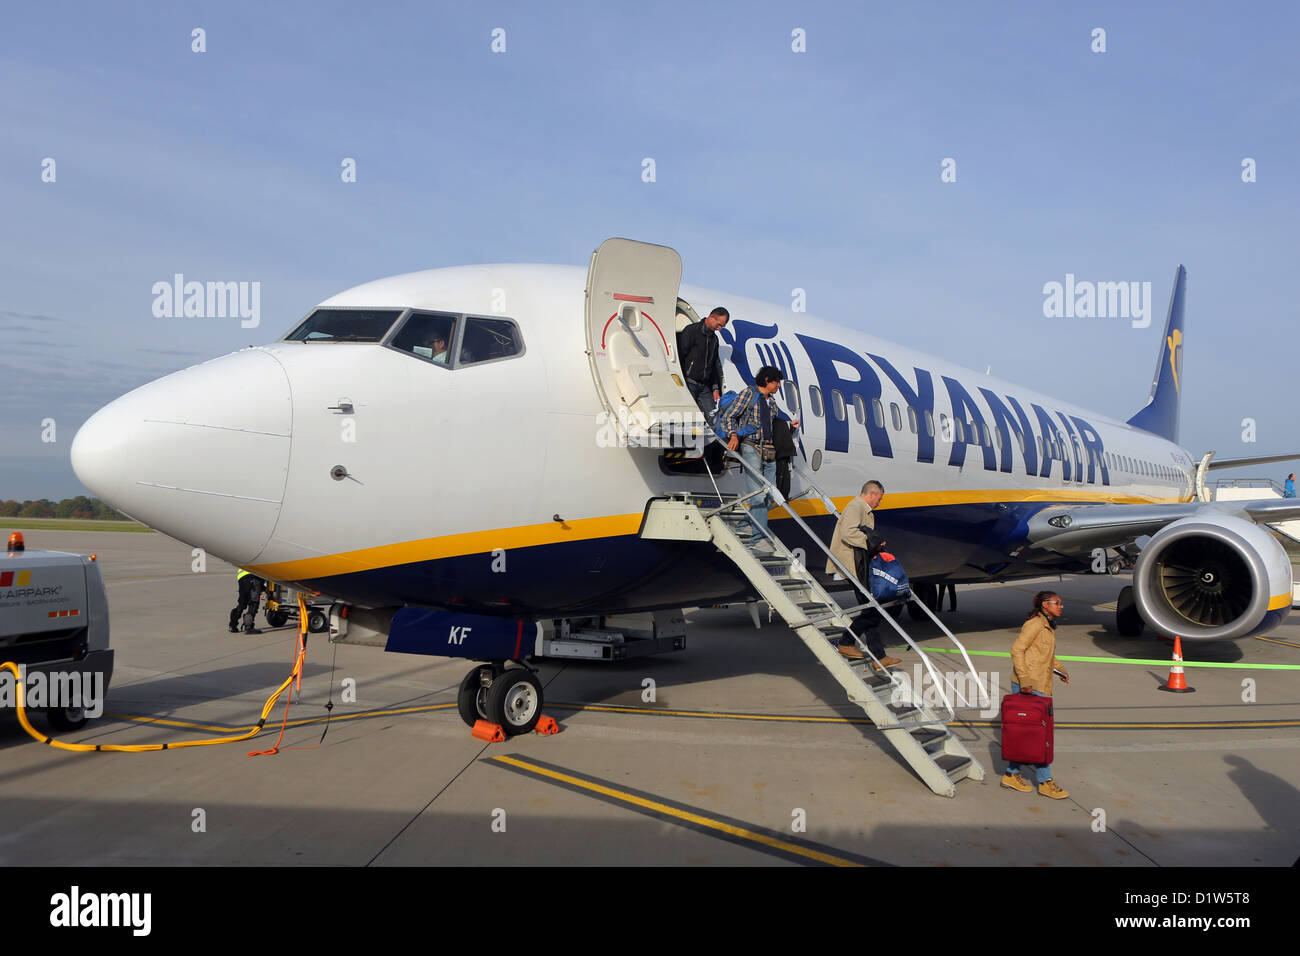 Rheinmuenster, Germany, travelers get out of a machine at the Ryanair - Stock Image